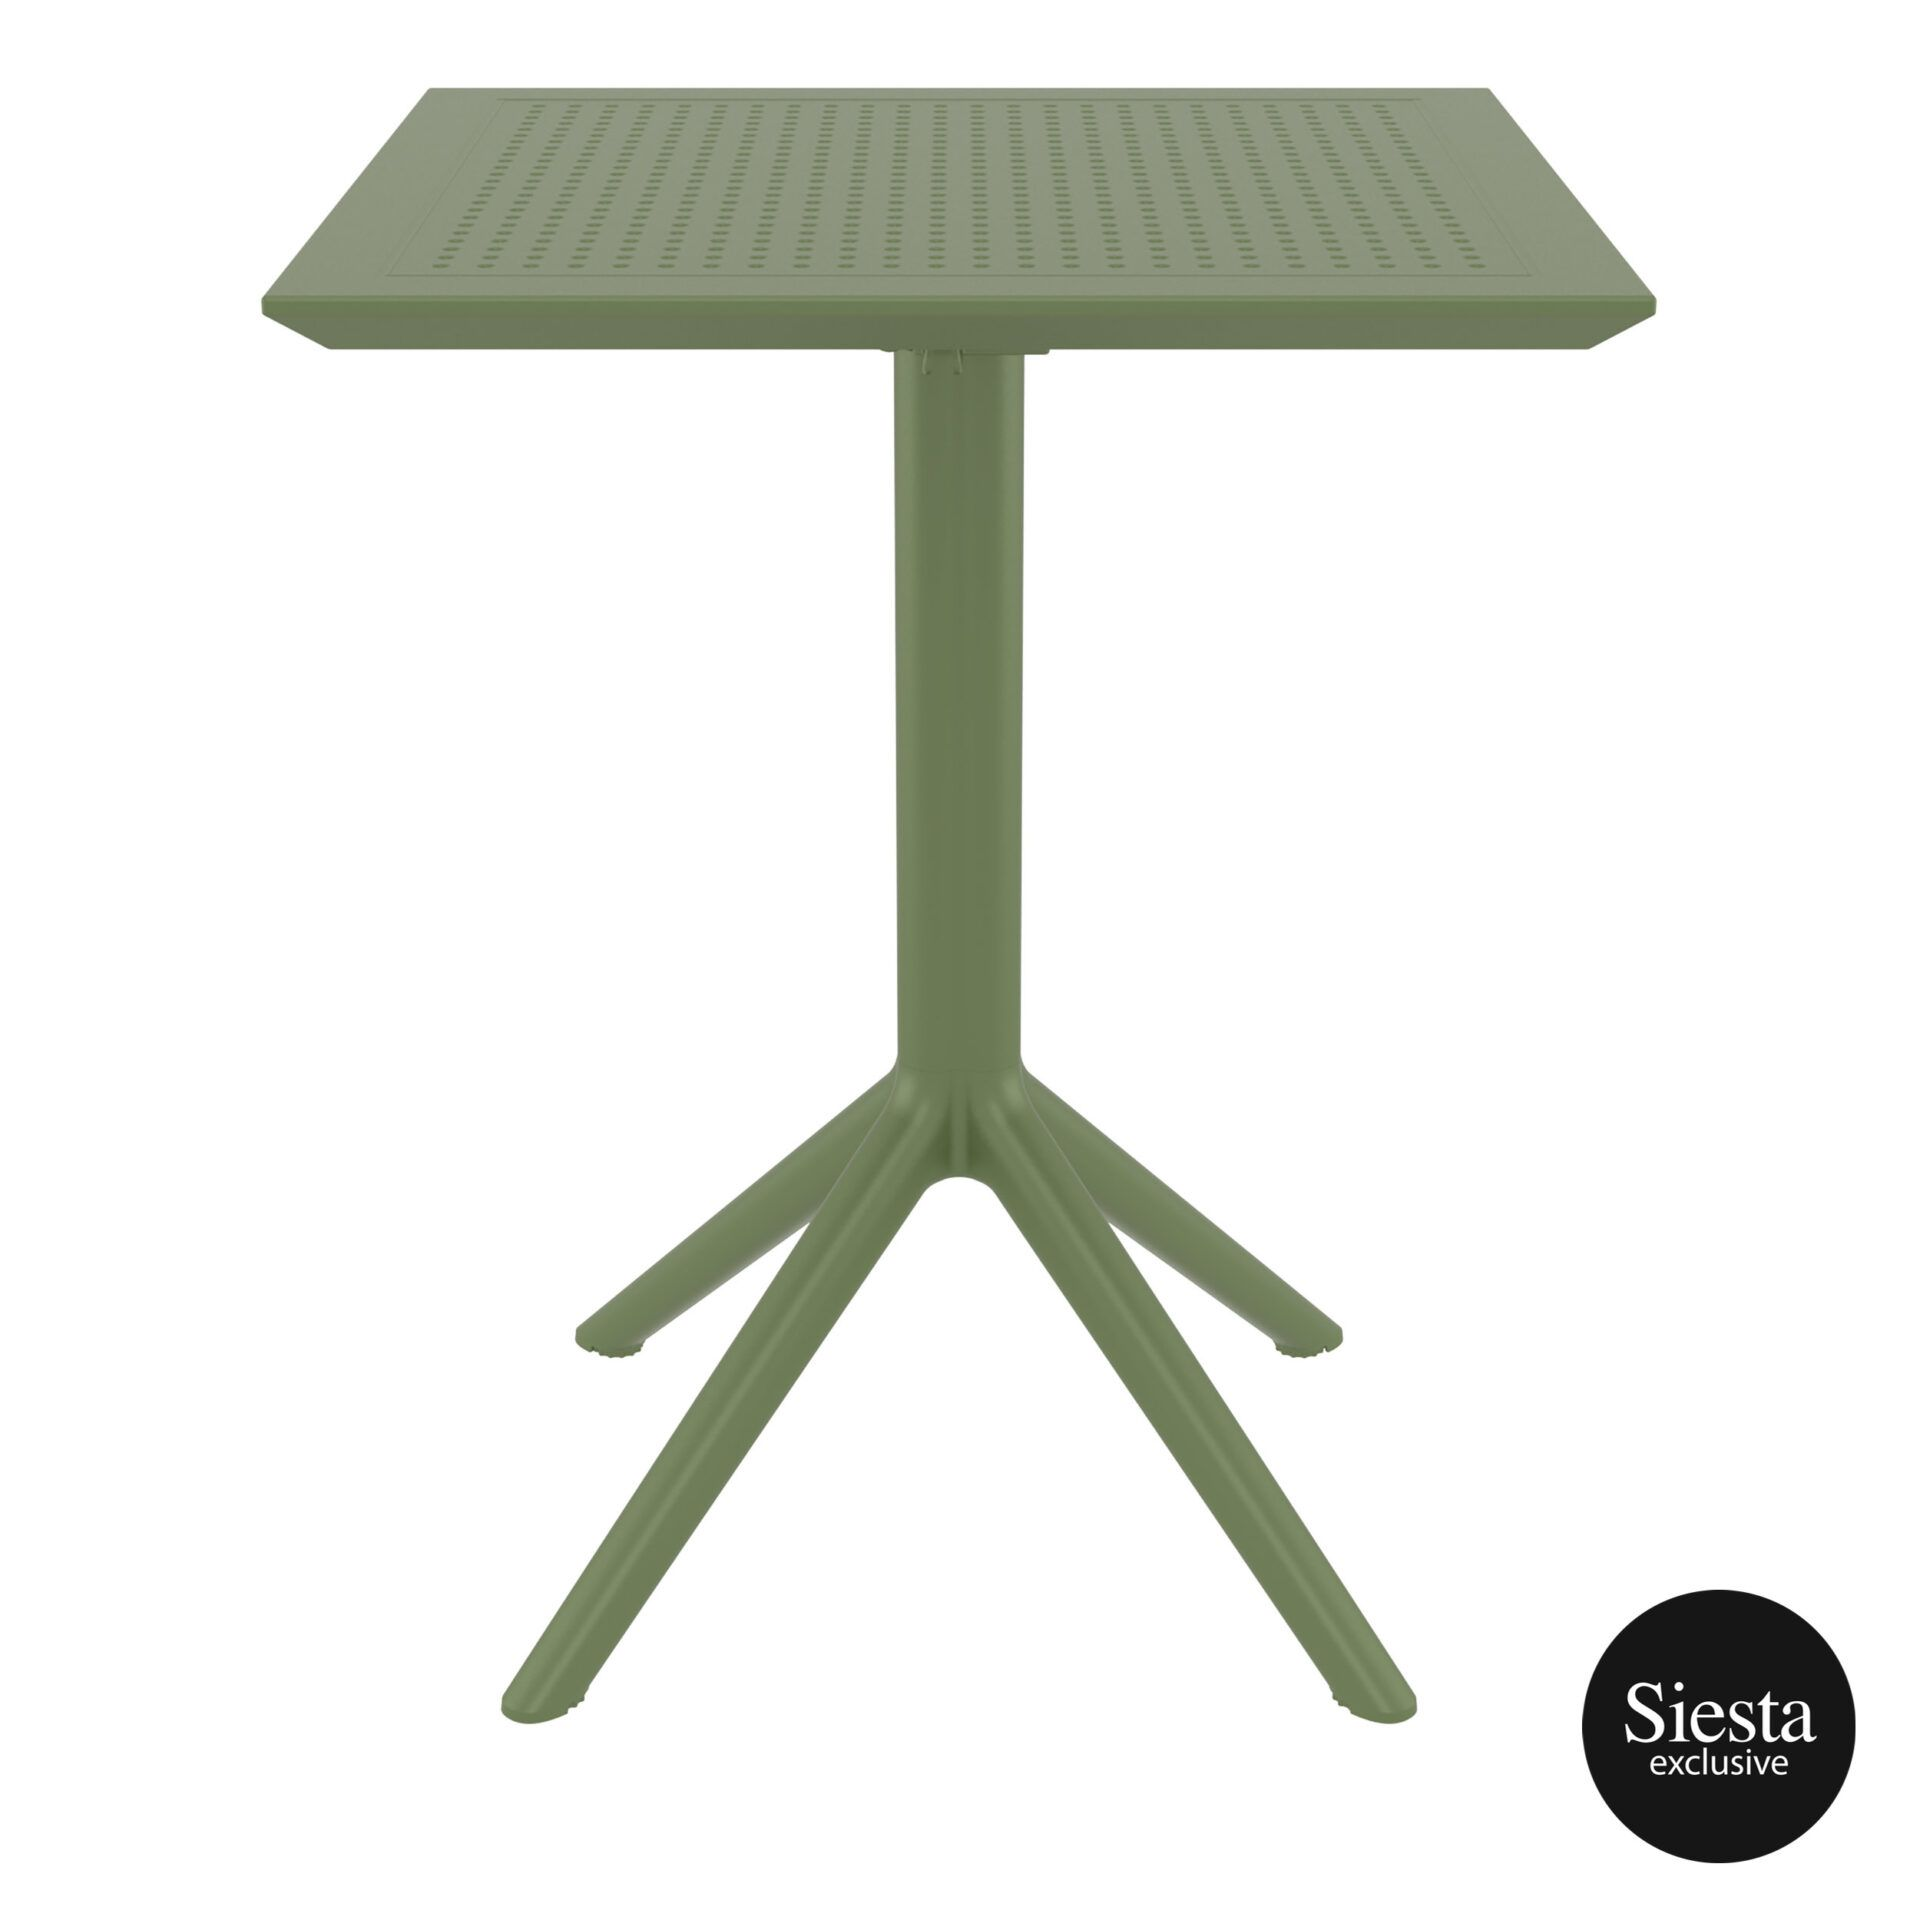 polypropylene outdoor sky folding table 60 olive green front